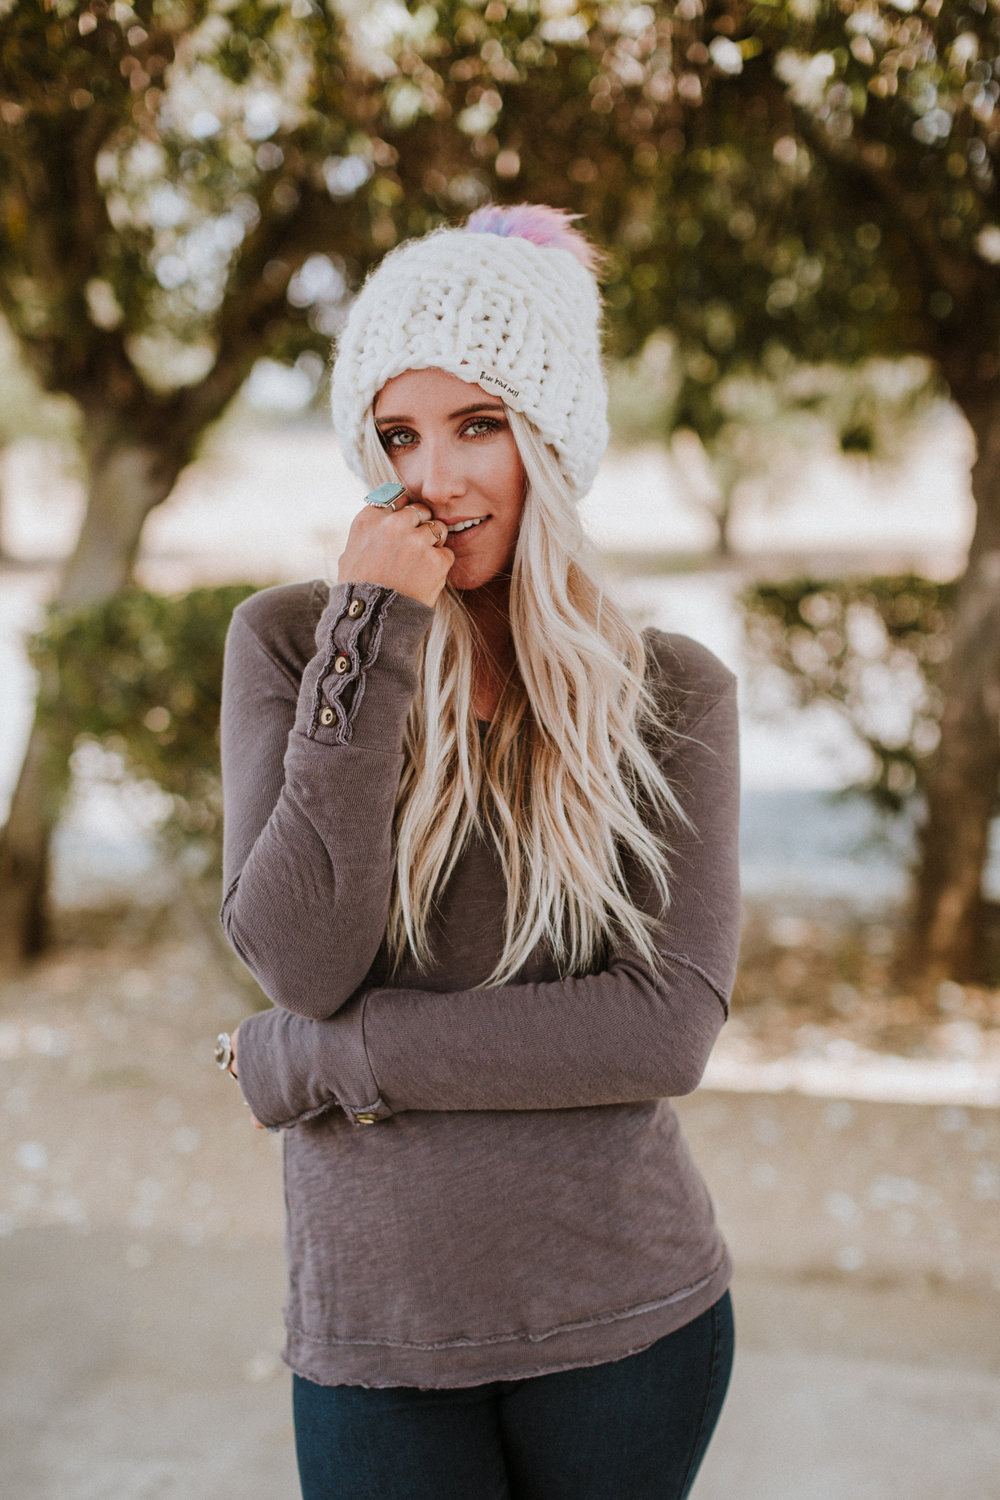 Featured Venture: Three Bird Nest - Three Bird Nest is a boho lifestyle brand dedicated to designing &curating bohemian clothing, jewelry, and accessories for women. Offering complete styled outfits for women weekly | Shop online 24/7Follow @threebirdnestShop www.ThreeBirdNest.com